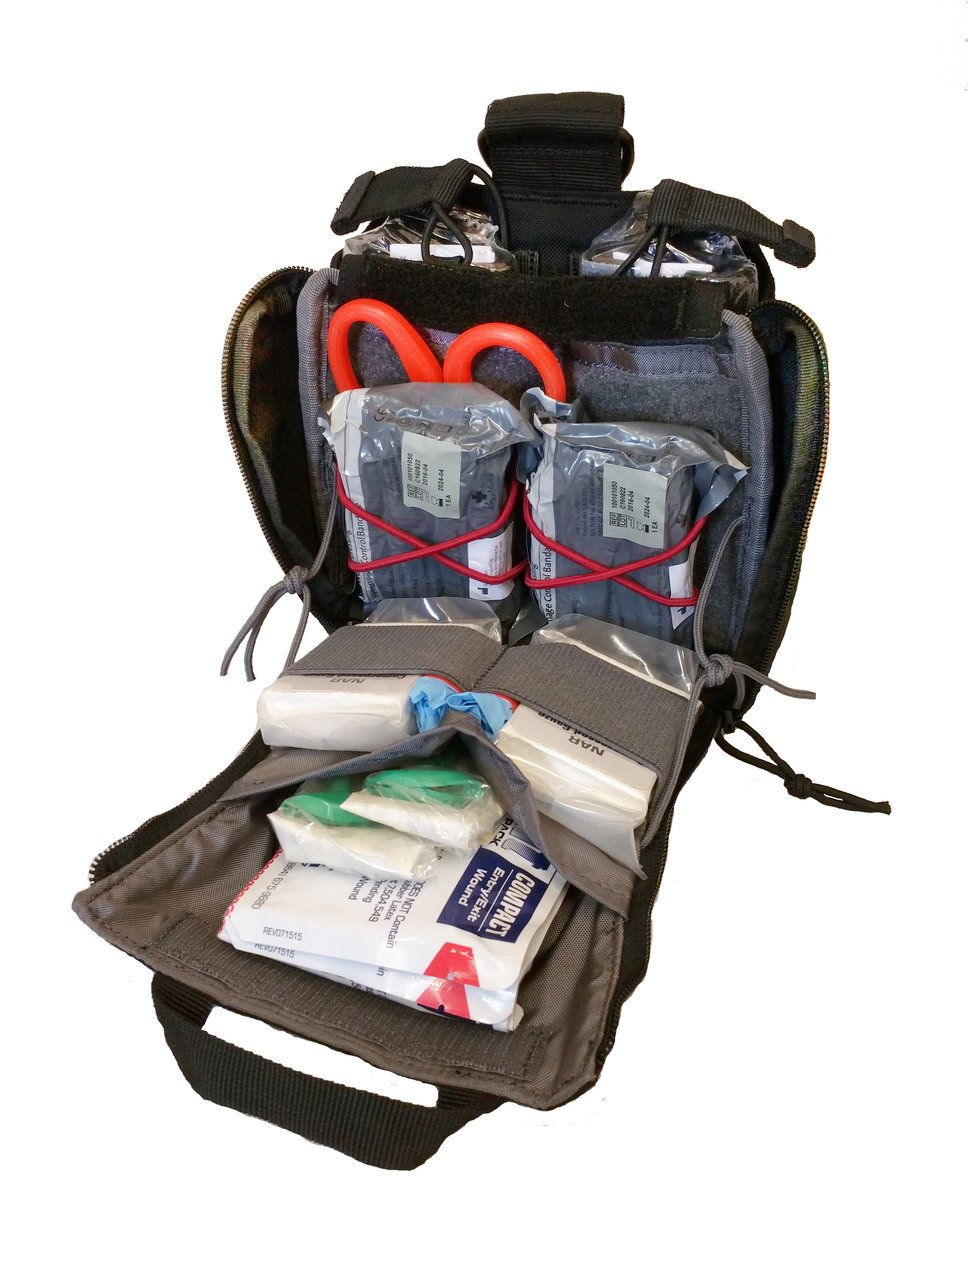 5.11 UCR THIGH RIG TACTICAL MEDICAL KIT by Rescue Essentials